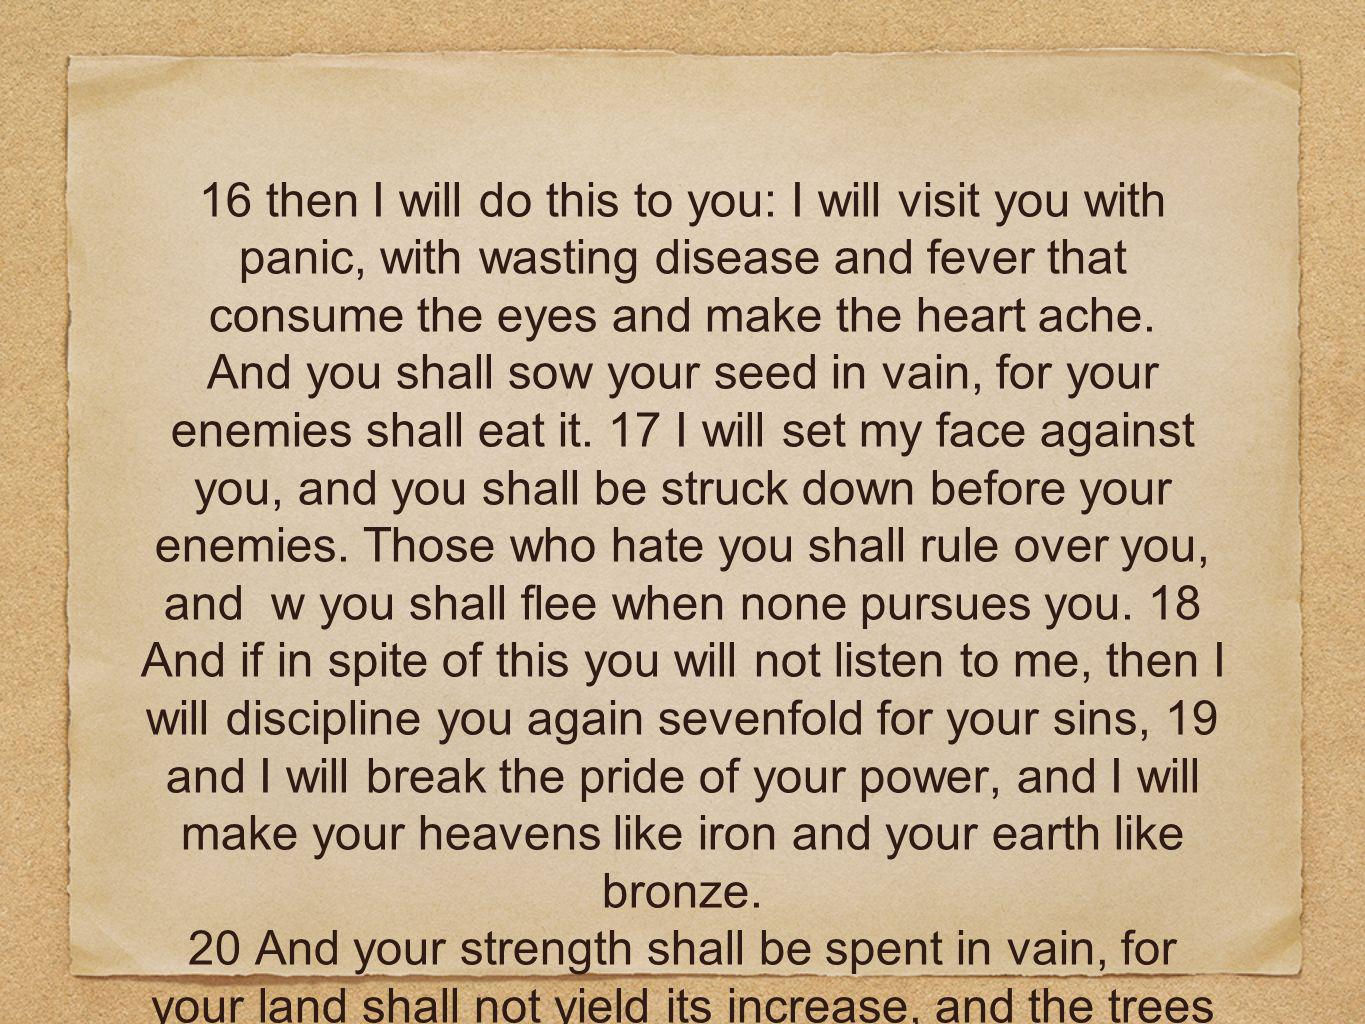 16 then I will do this to you: I will visit you with panic, with wasting disease and fever that consume the eyes and make the heart ache. And you shal